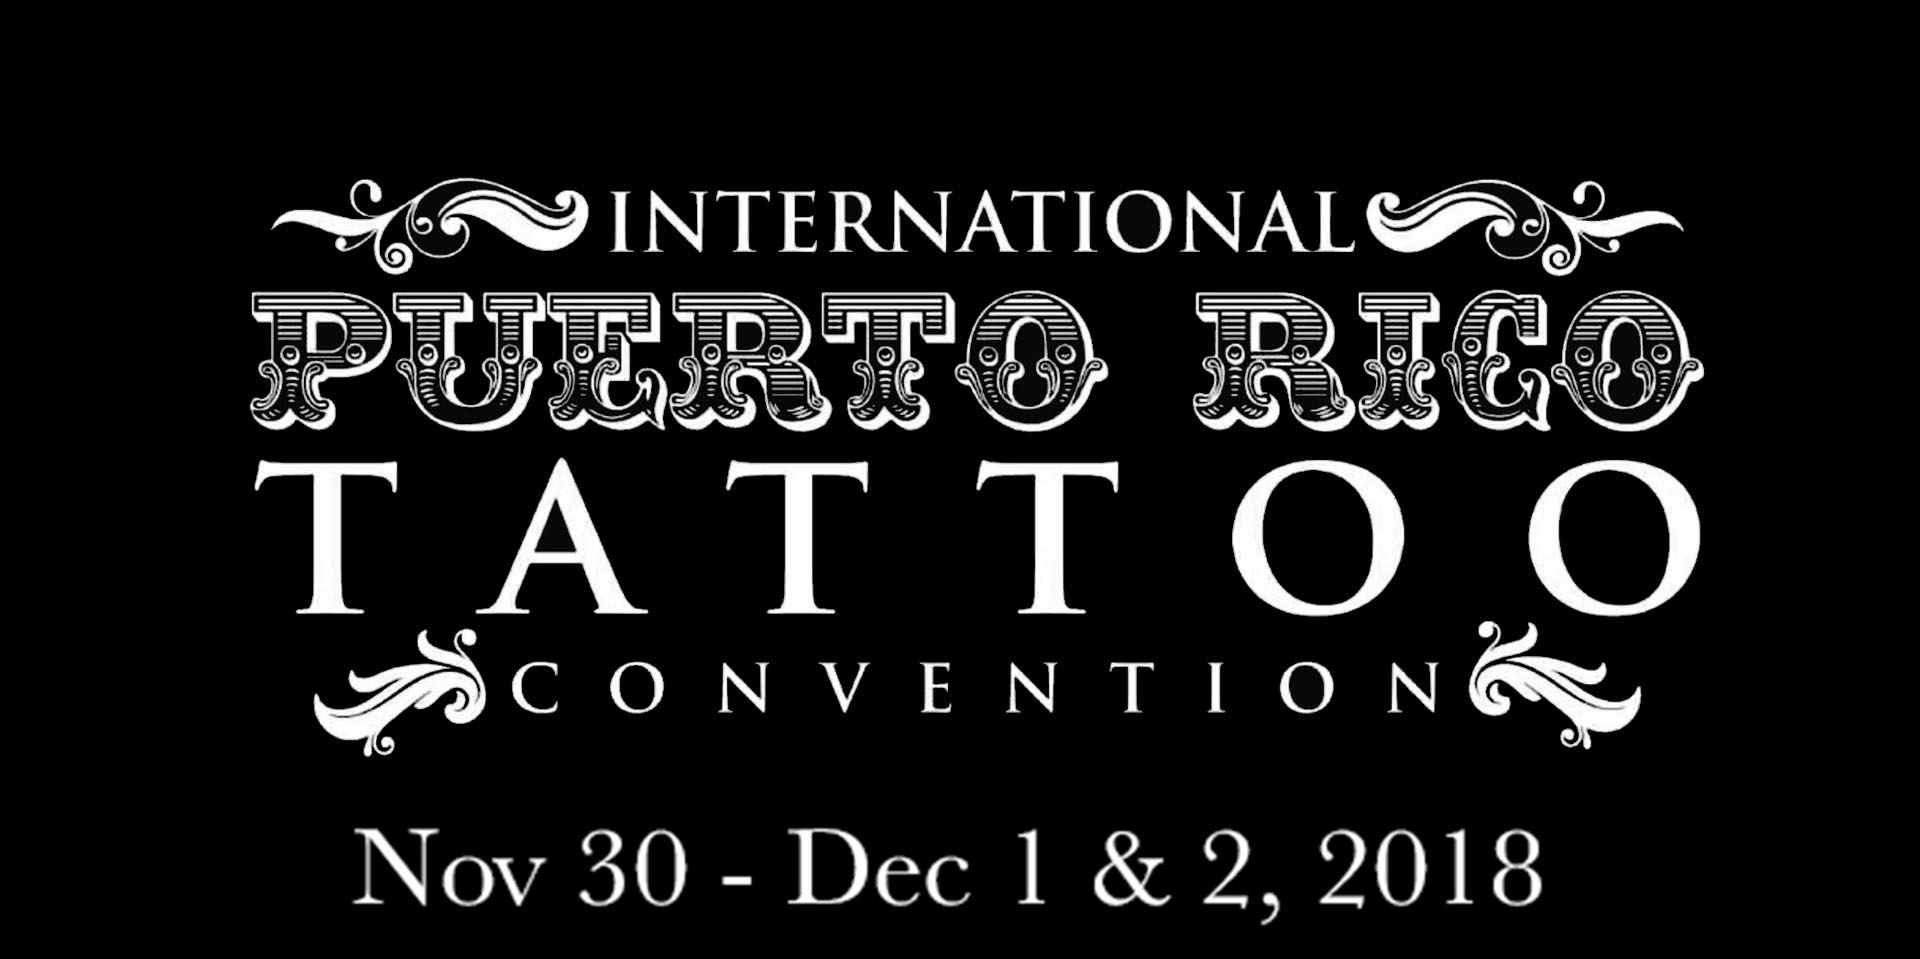 Doing The Puerto Rico Tattoo Convention November 30th-December 2nd!